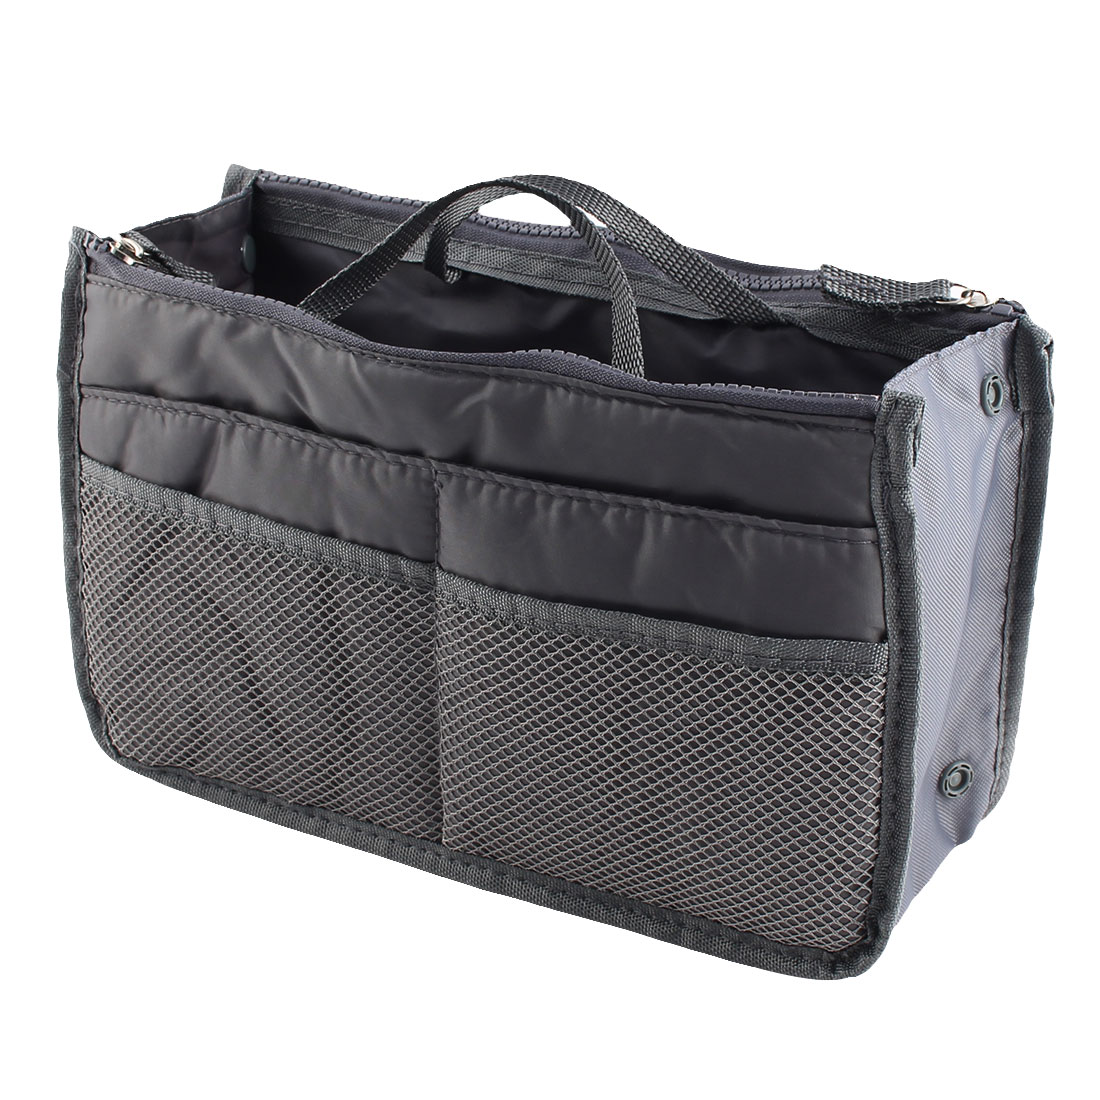 Portable Multi-functional Storage Bag Handbag Organizer Holder Container Gray